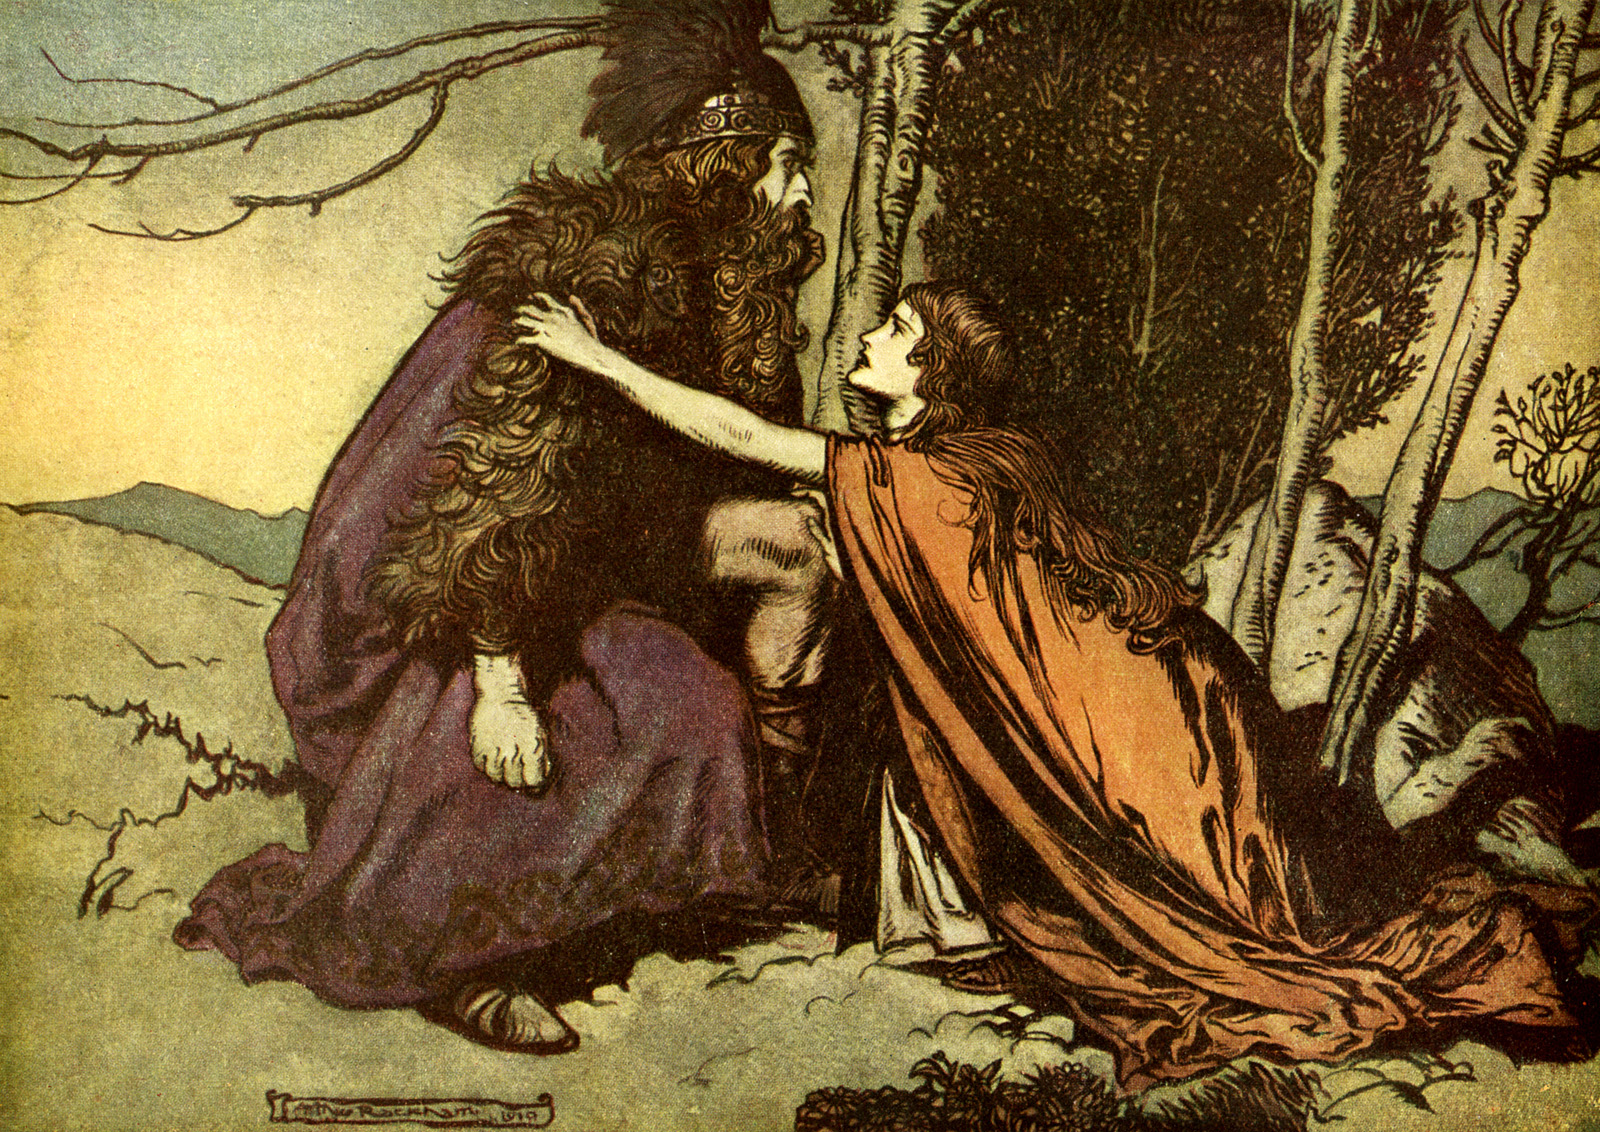 arthur rackham_the ring of the niblung_the valkyrie_06